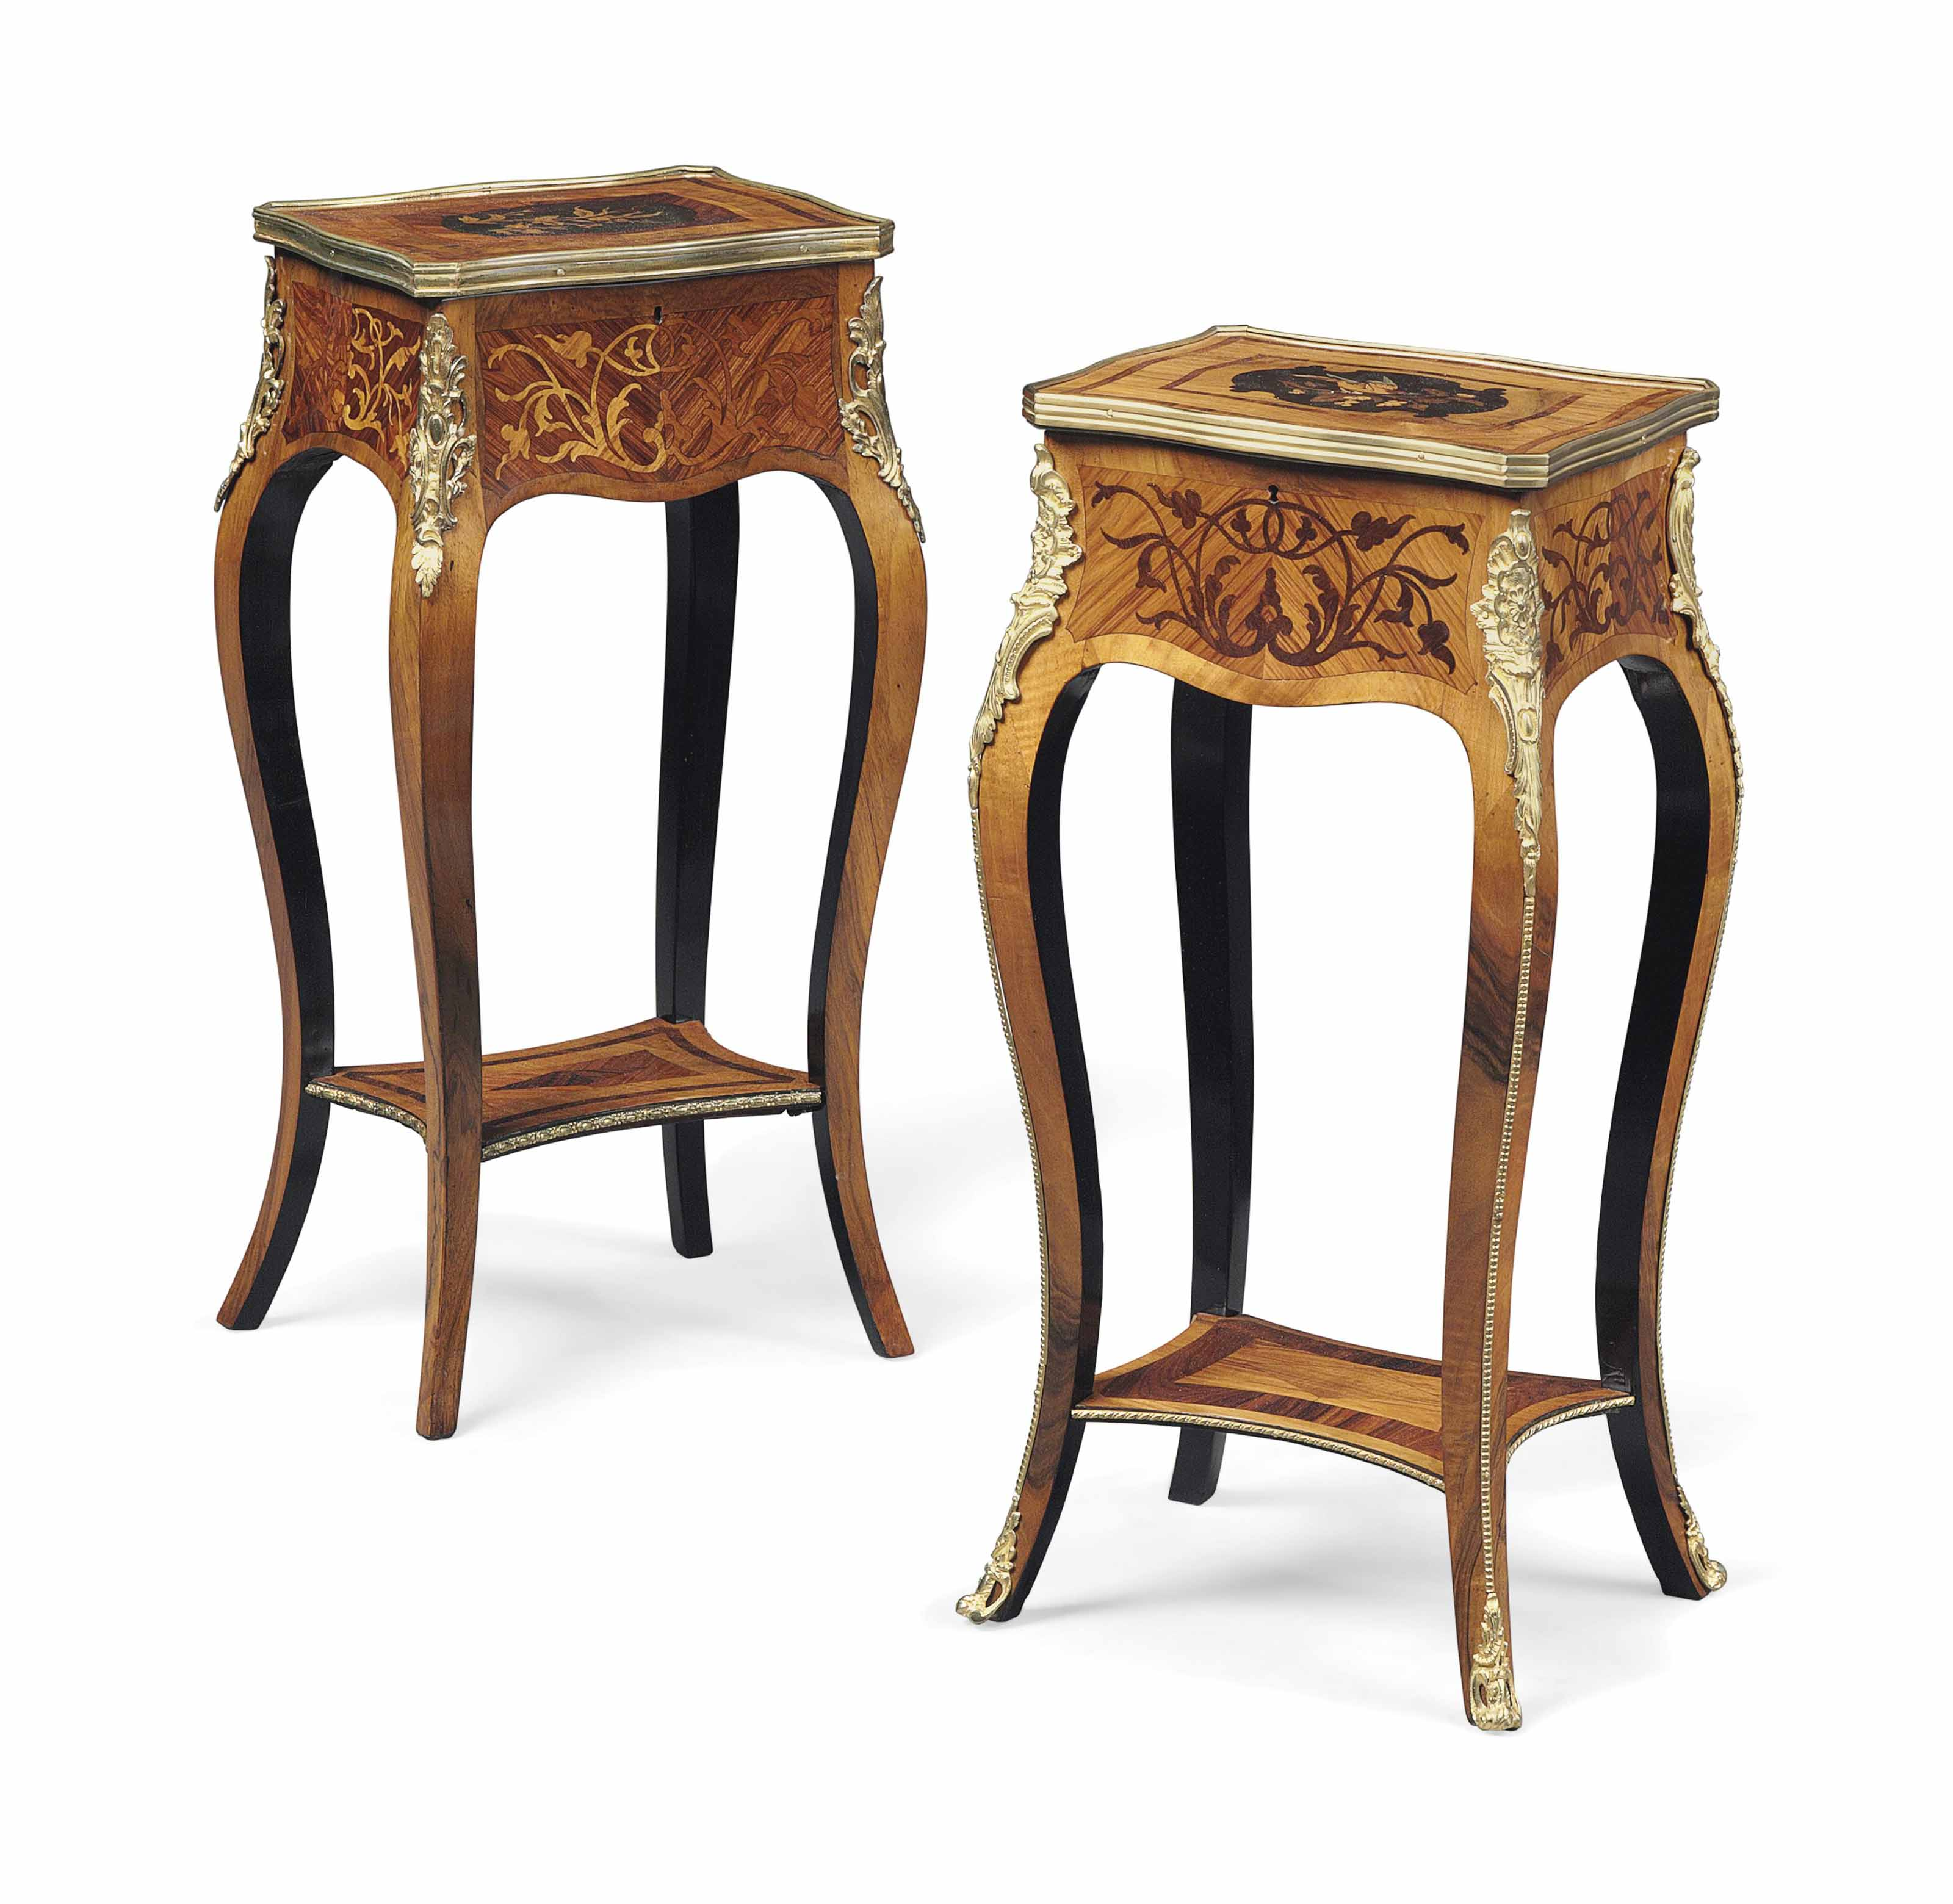 A MATCHED PAIR OF GILT-METAL M